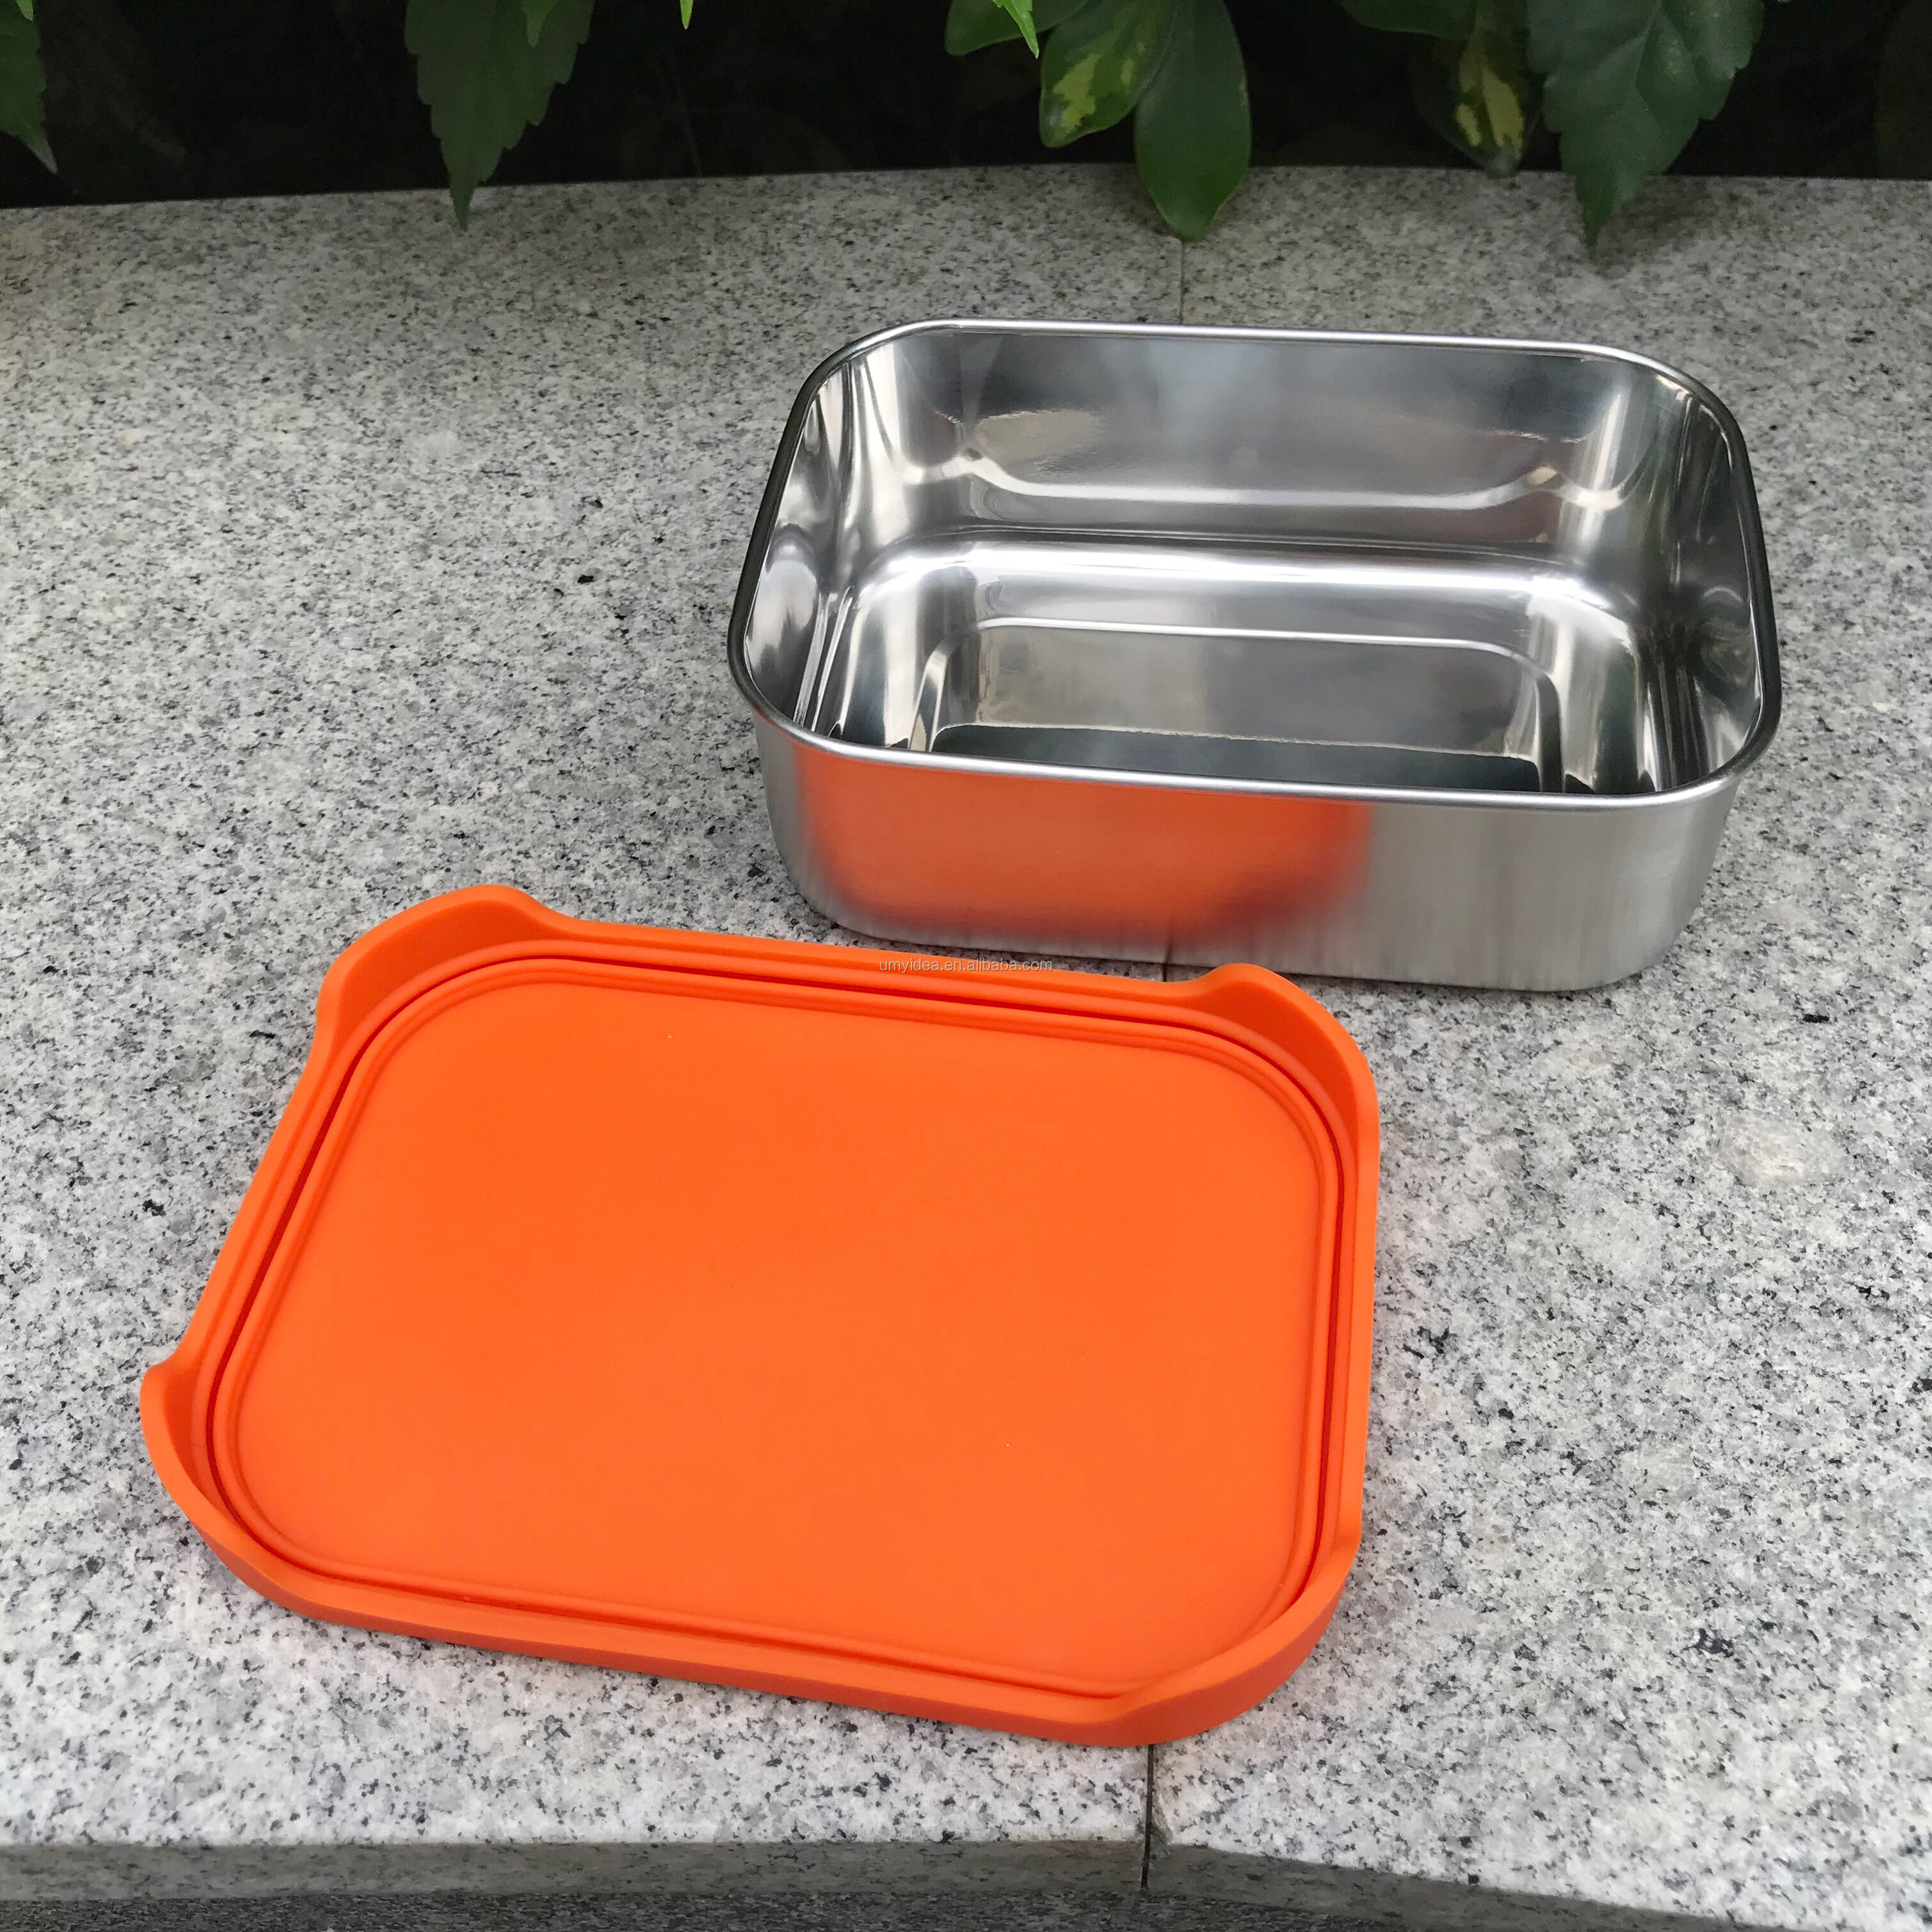 Leak Proof Stainless Steel Food Container & Condiment Holder,Metal Lunch Box Bento Box Nesting Storage,Portion Snacks Dressings